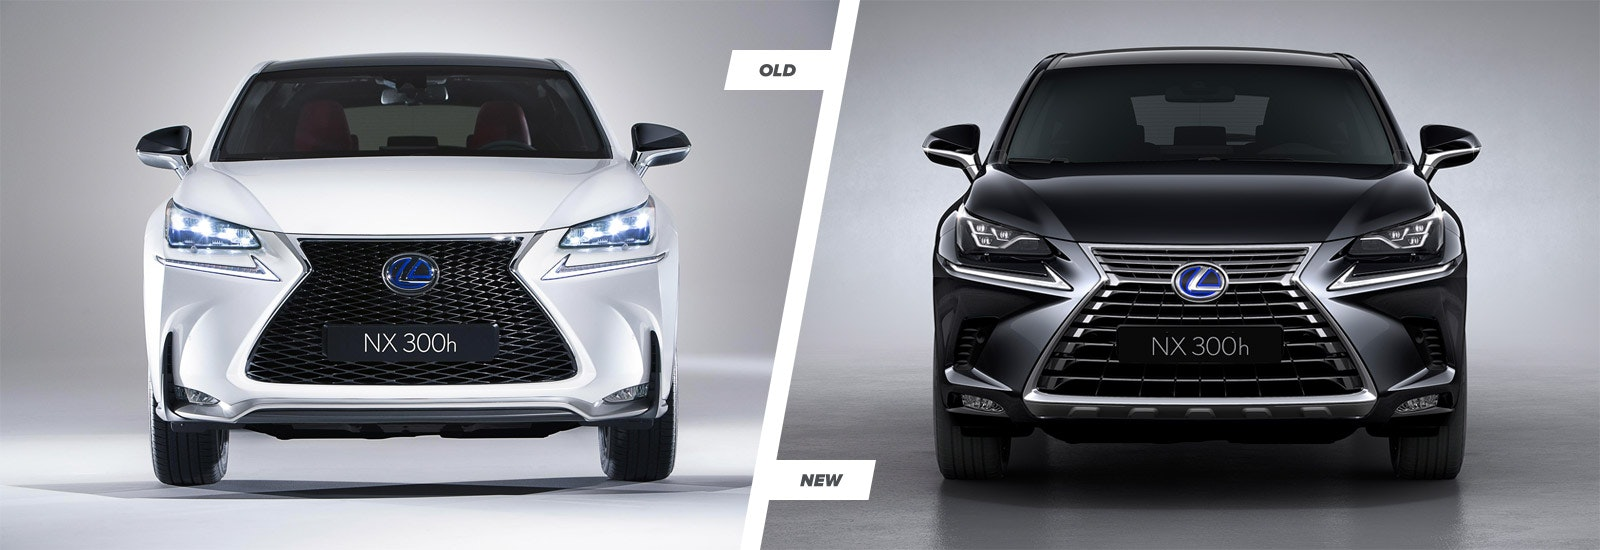 2018 Lexus NX facelift price, specs and release date | carwow